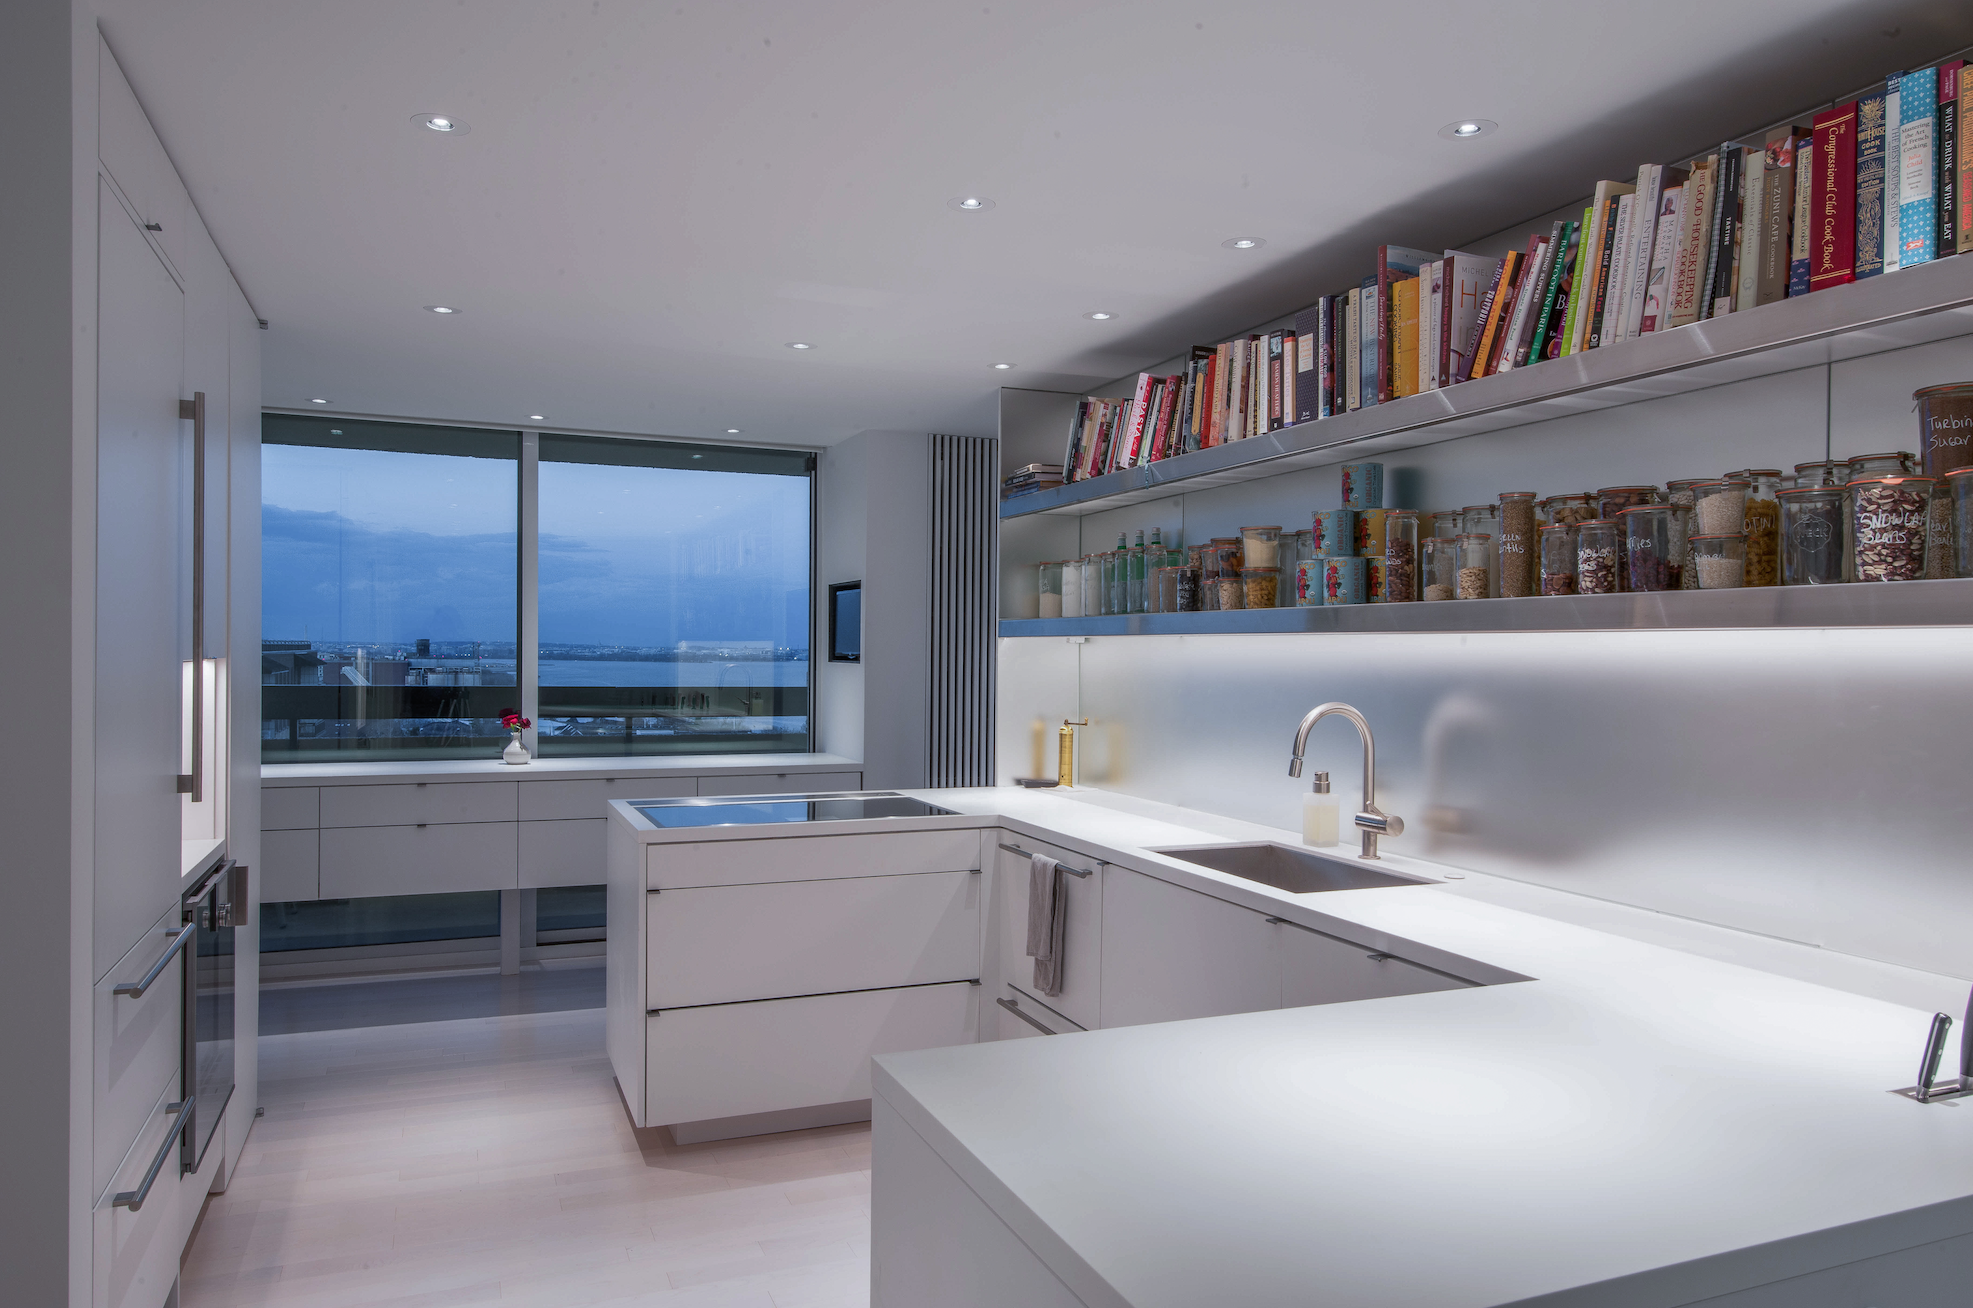 Corian counters and drawer faces make this a one of a kind kitchen.